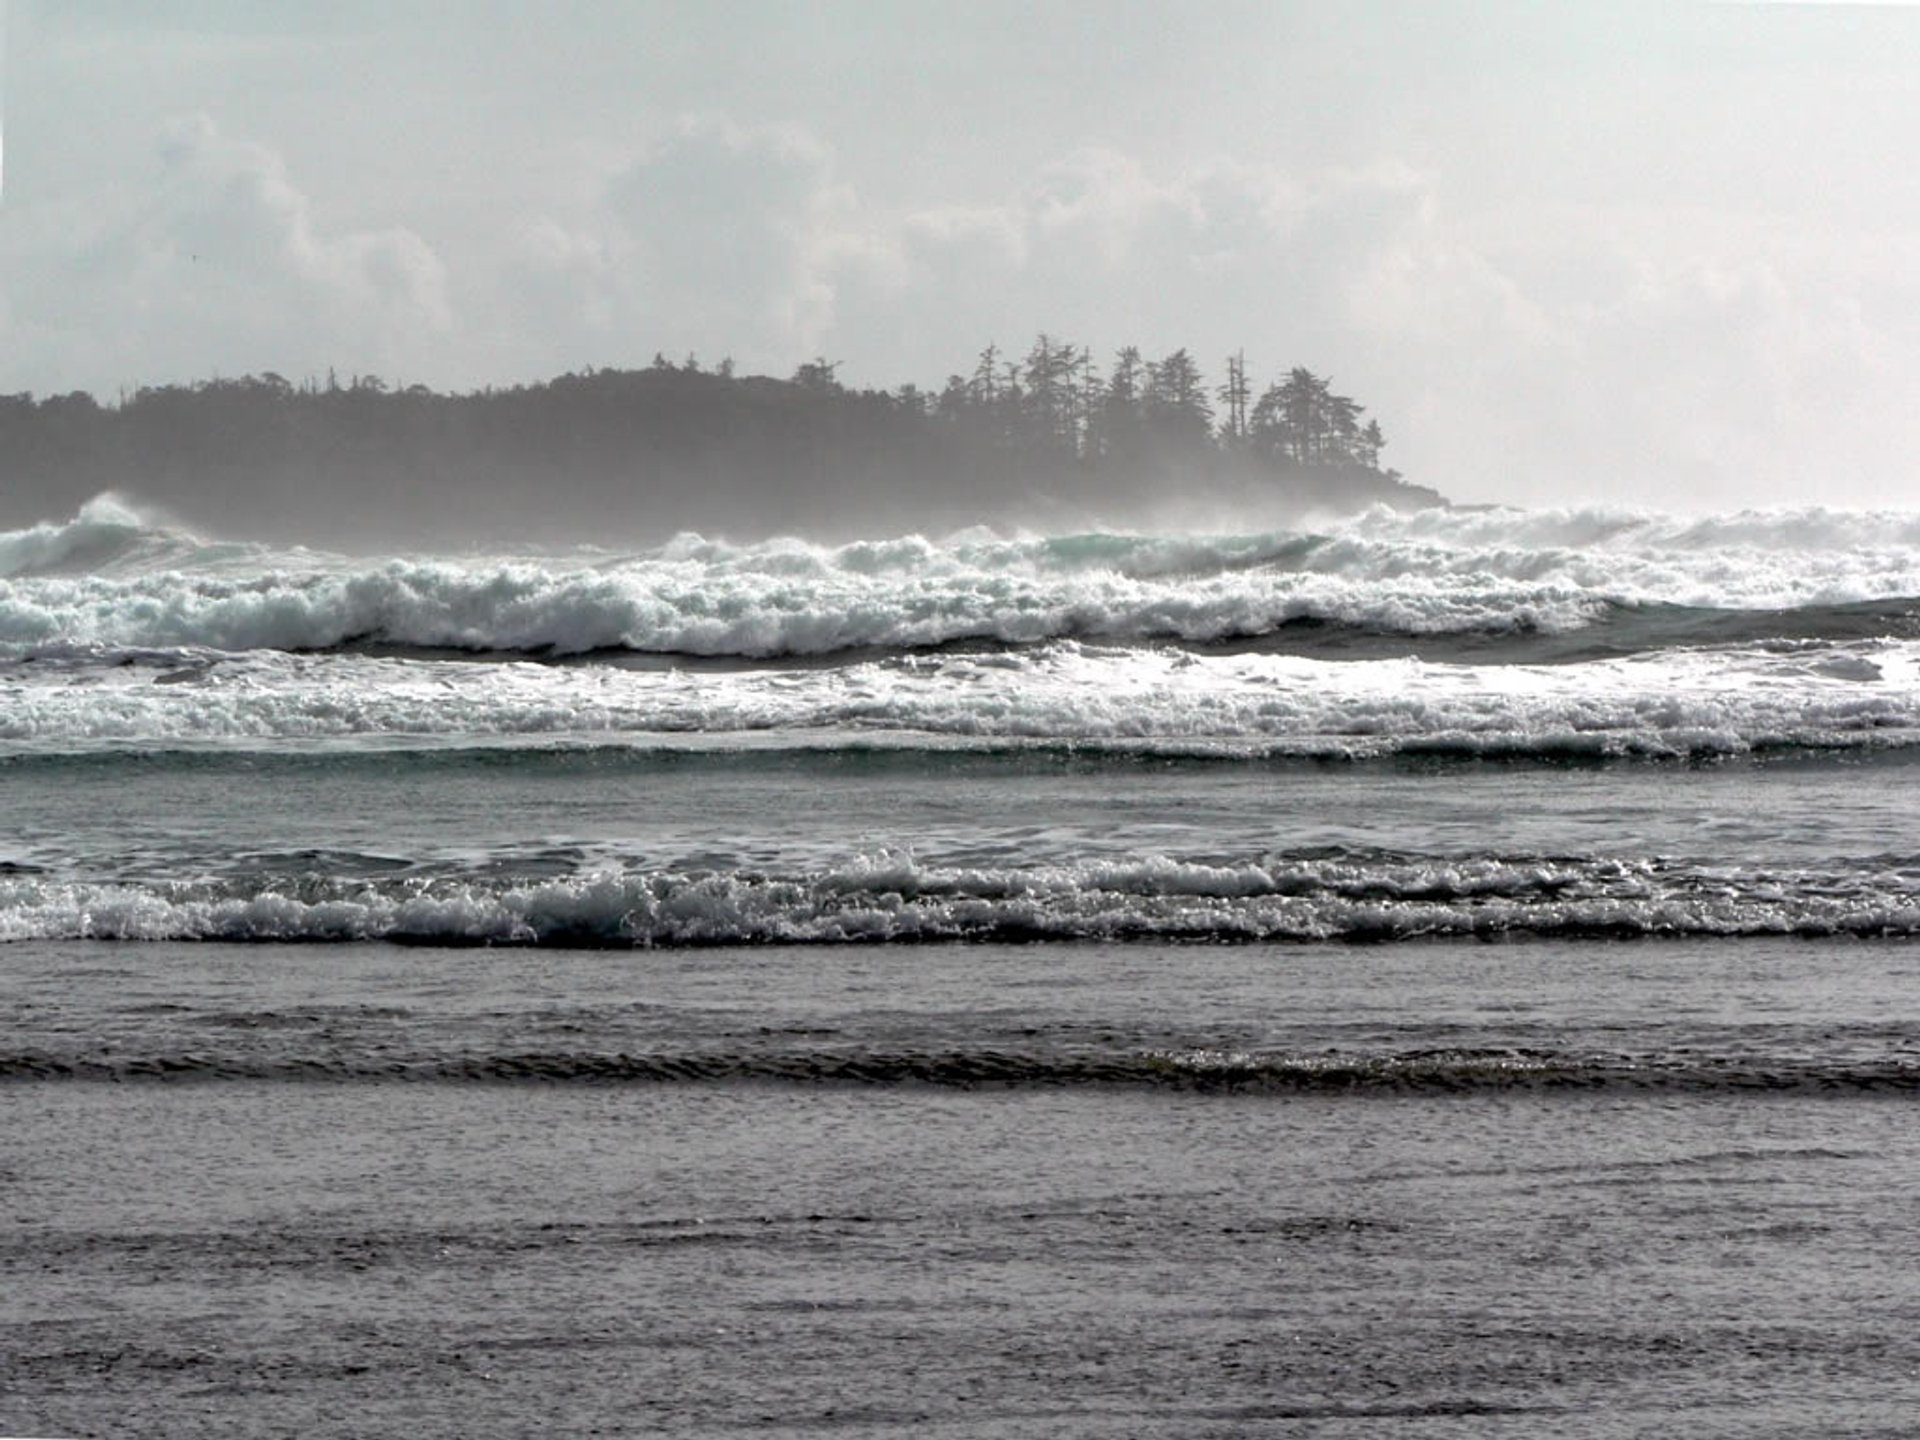 Storm Watching in Tofino in British Columbia 2020 - Best Time